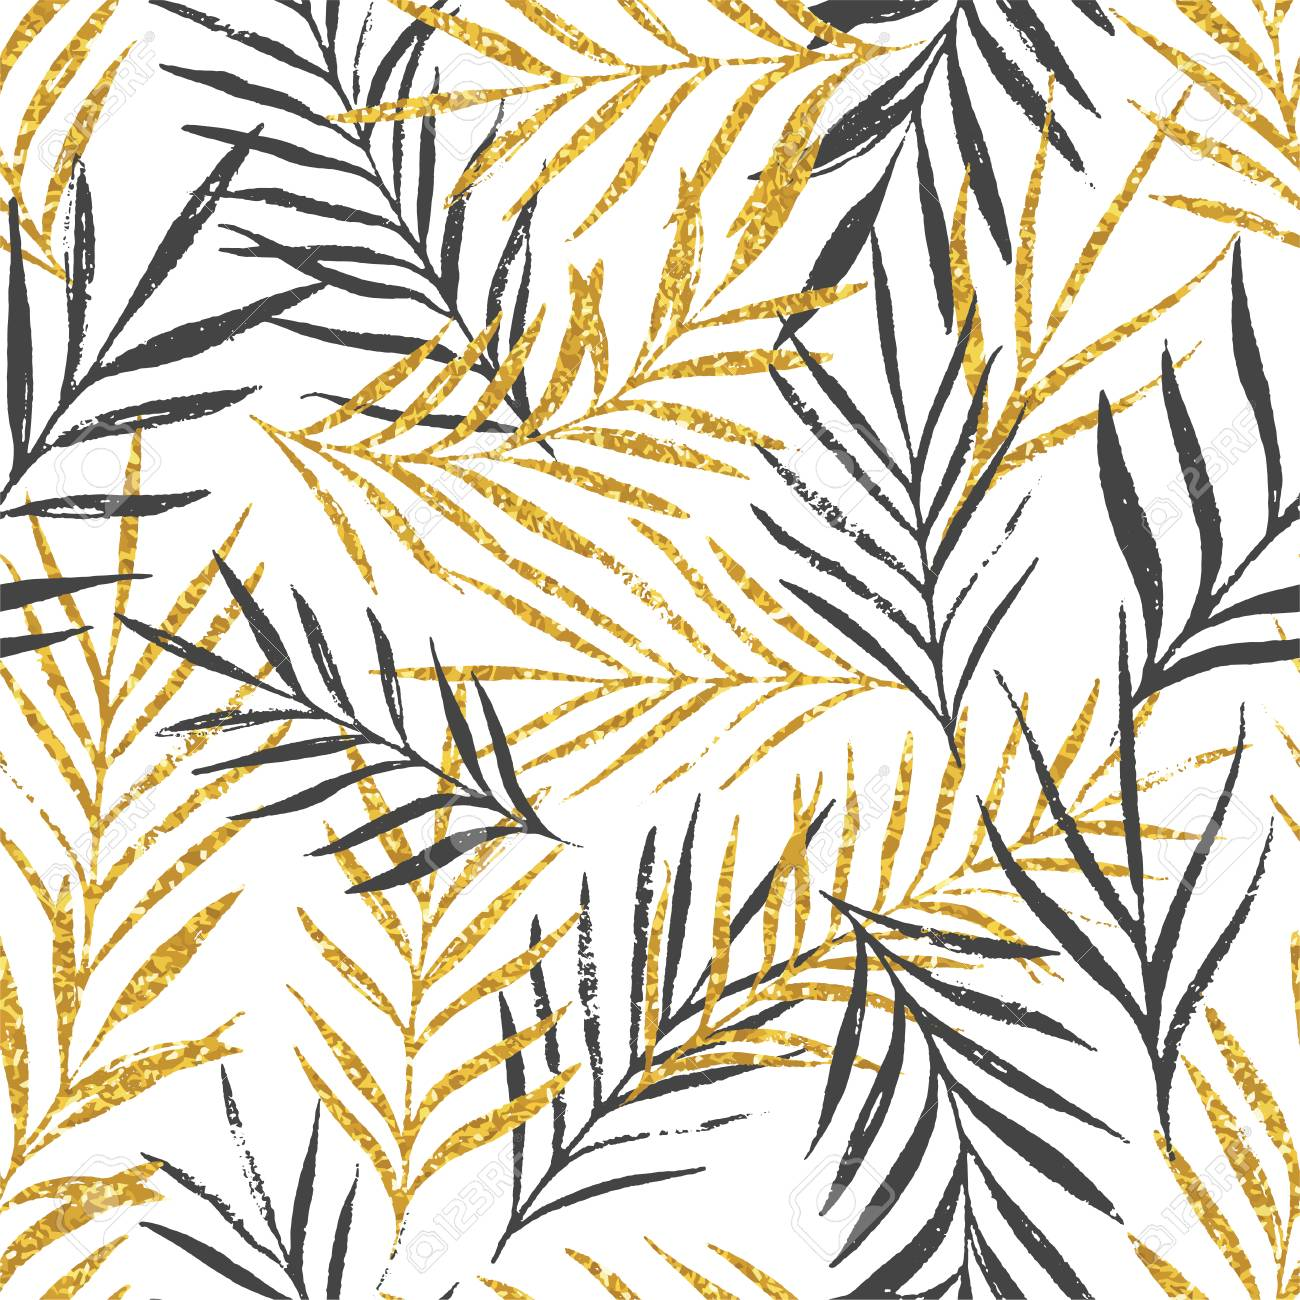 Abstract floral seamless pattern with palm leaves, trendy gold glitter texture. Stylish background, textile or wrapping paper design. Vector illustration - 98093500